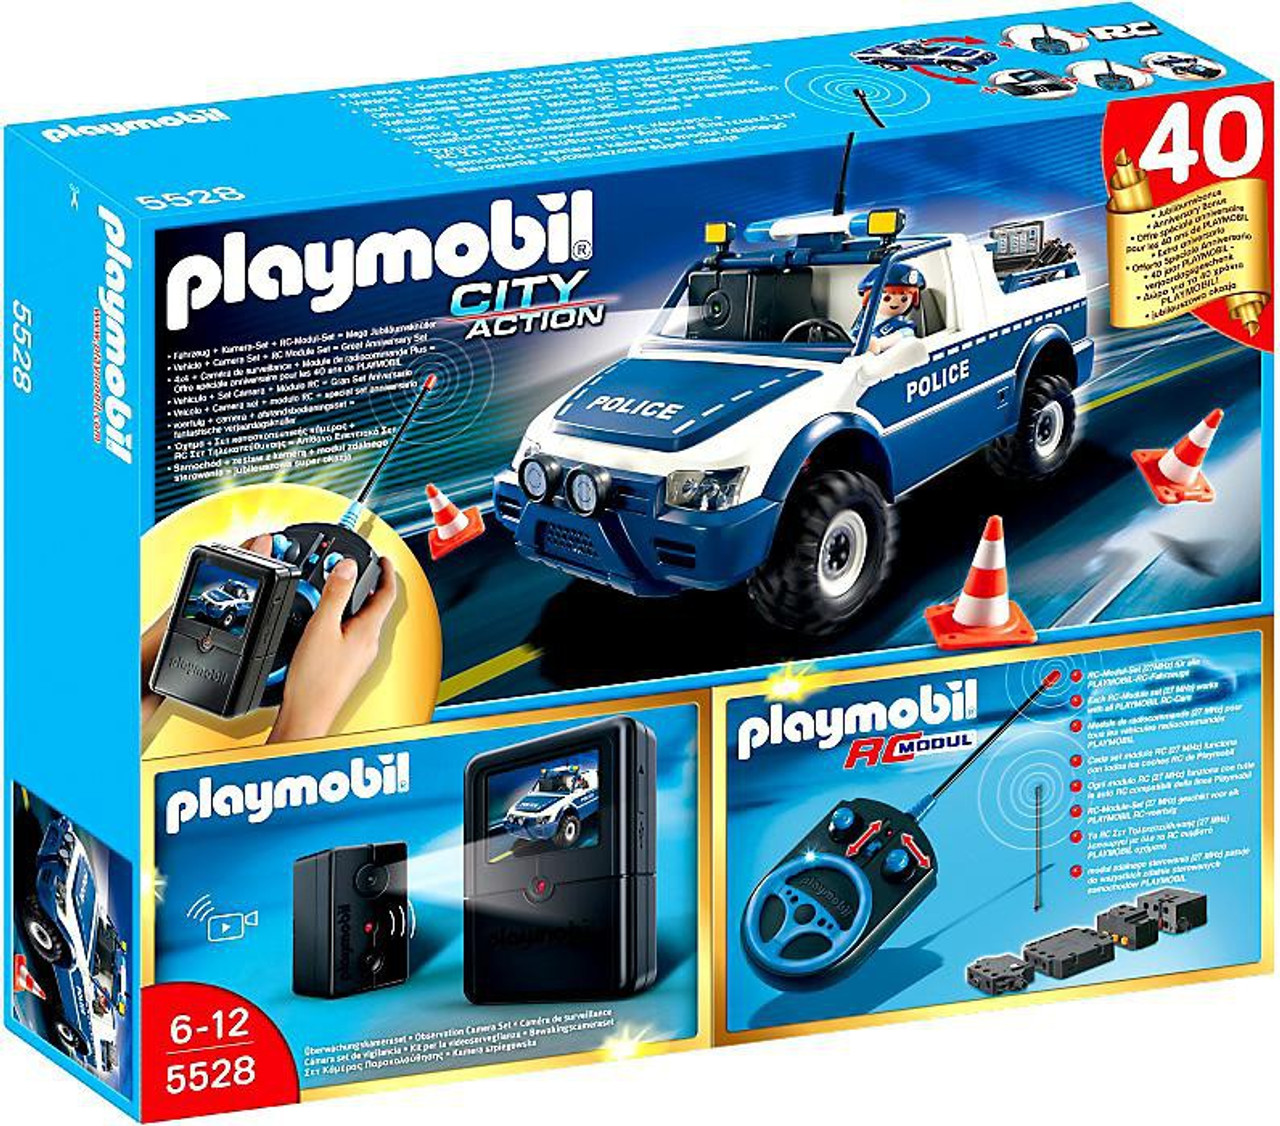 Playmobil City Action RC Police Car With Camera Set 5528